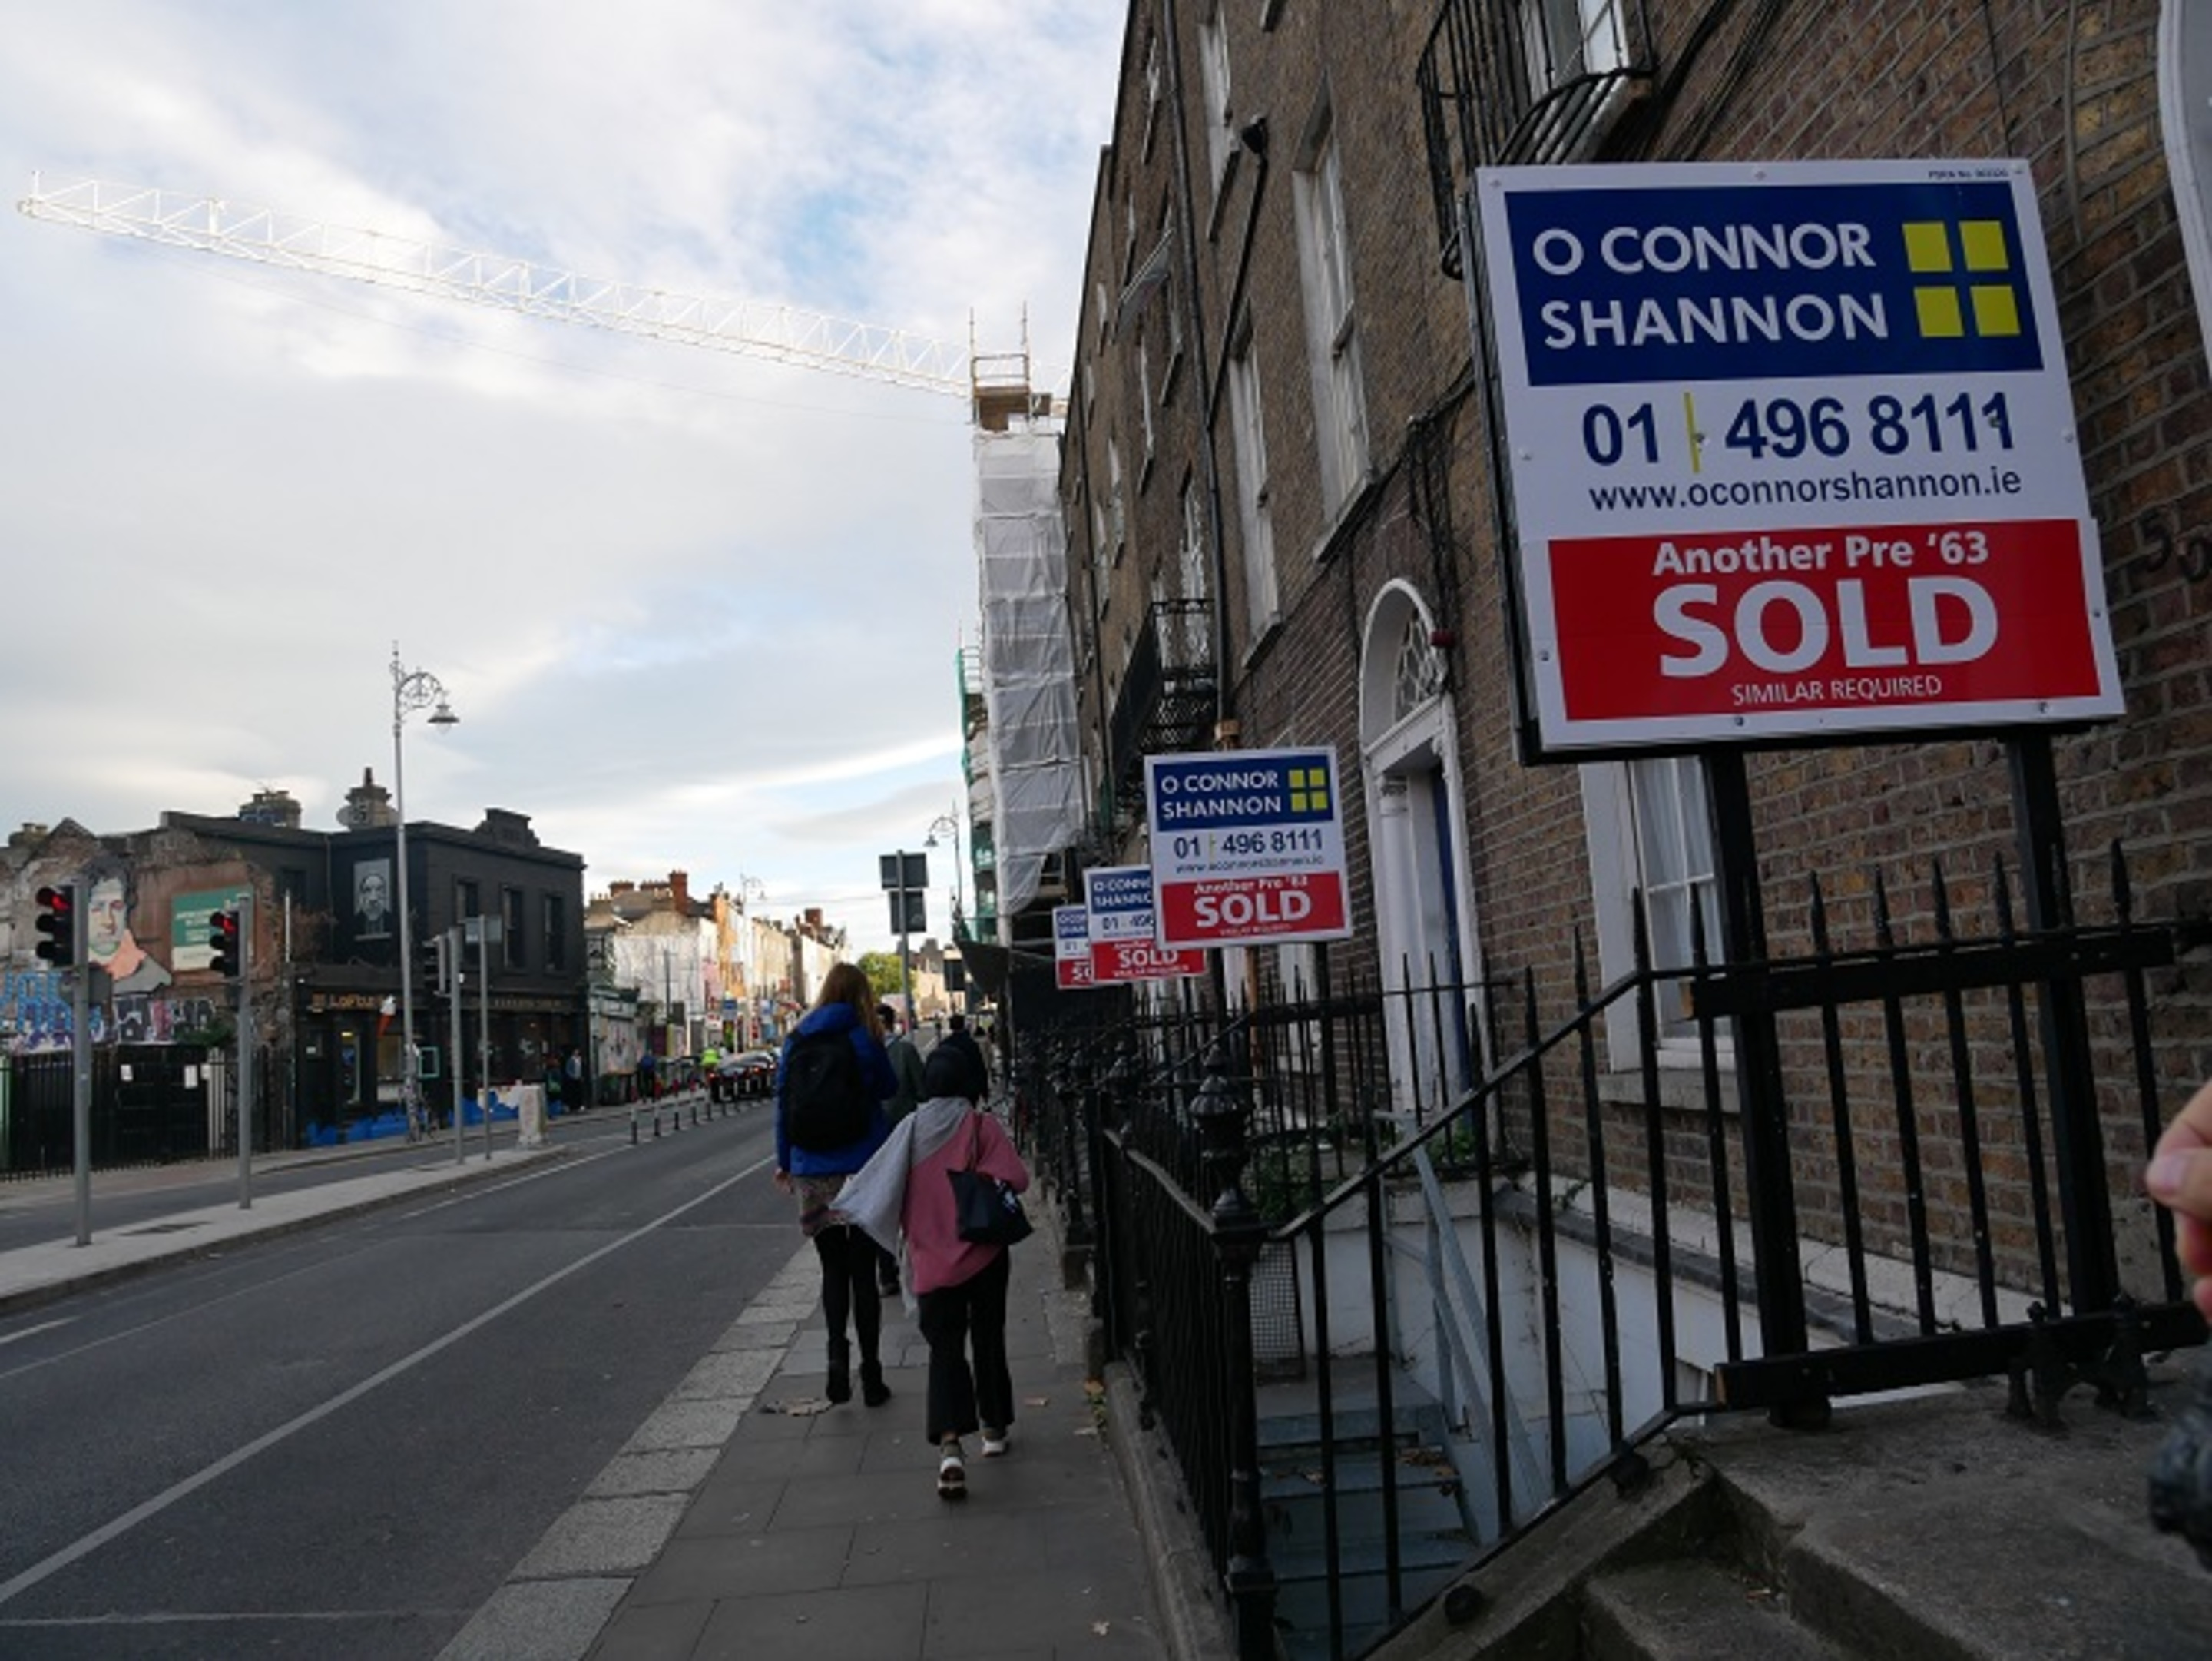 In Rathmines, Grove Park Sees a Flurry of Building | Dublin